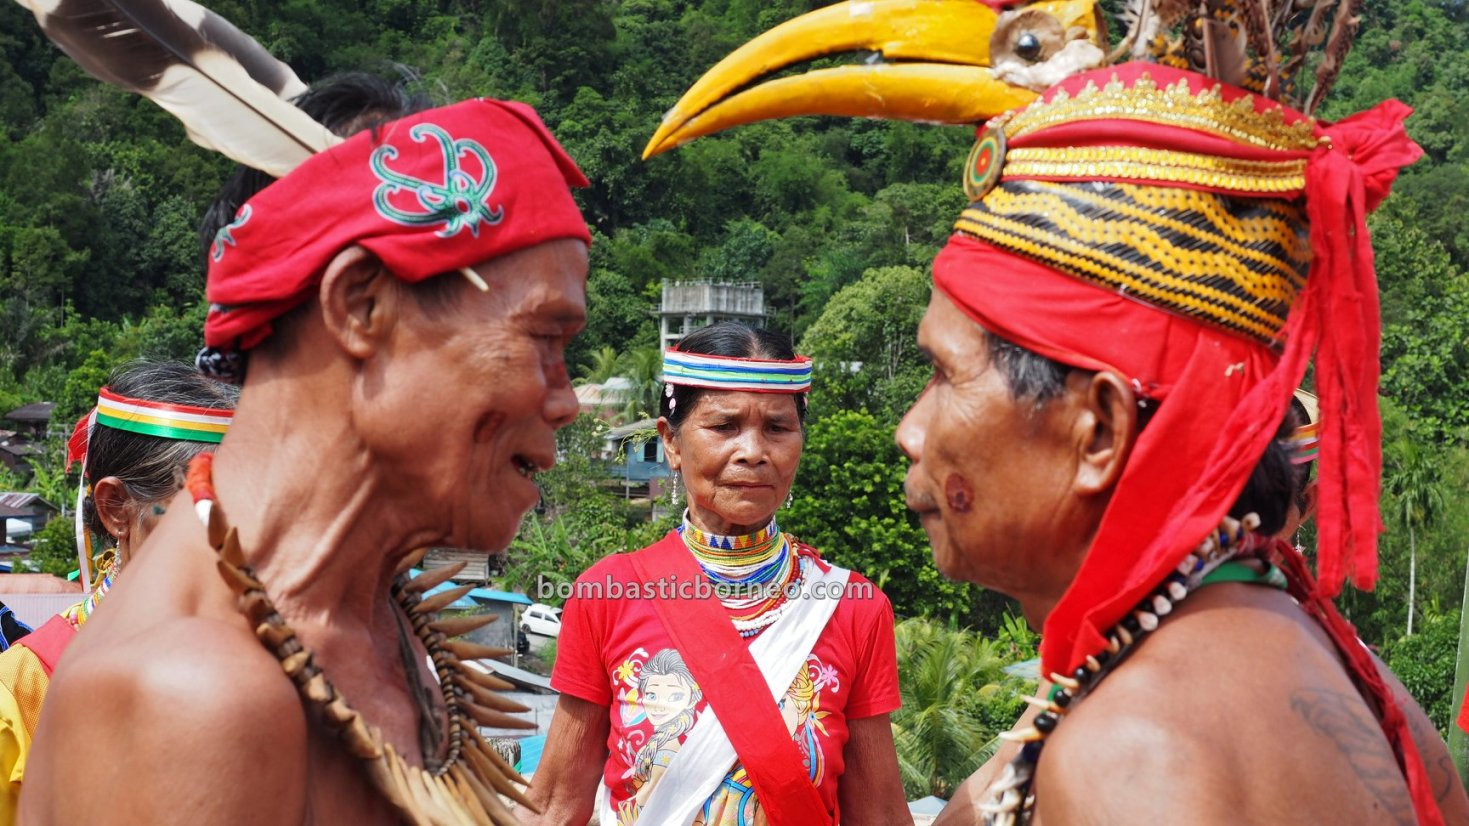 Bidayuh Village, harvest festival, authentic, traditional, backpackers, Borneo, Kuching, Malaysia, culture, native, tribal, Tourism, travel guide, cross border, 砂拉越土著丰收节日, 婆罗洲达雅文化